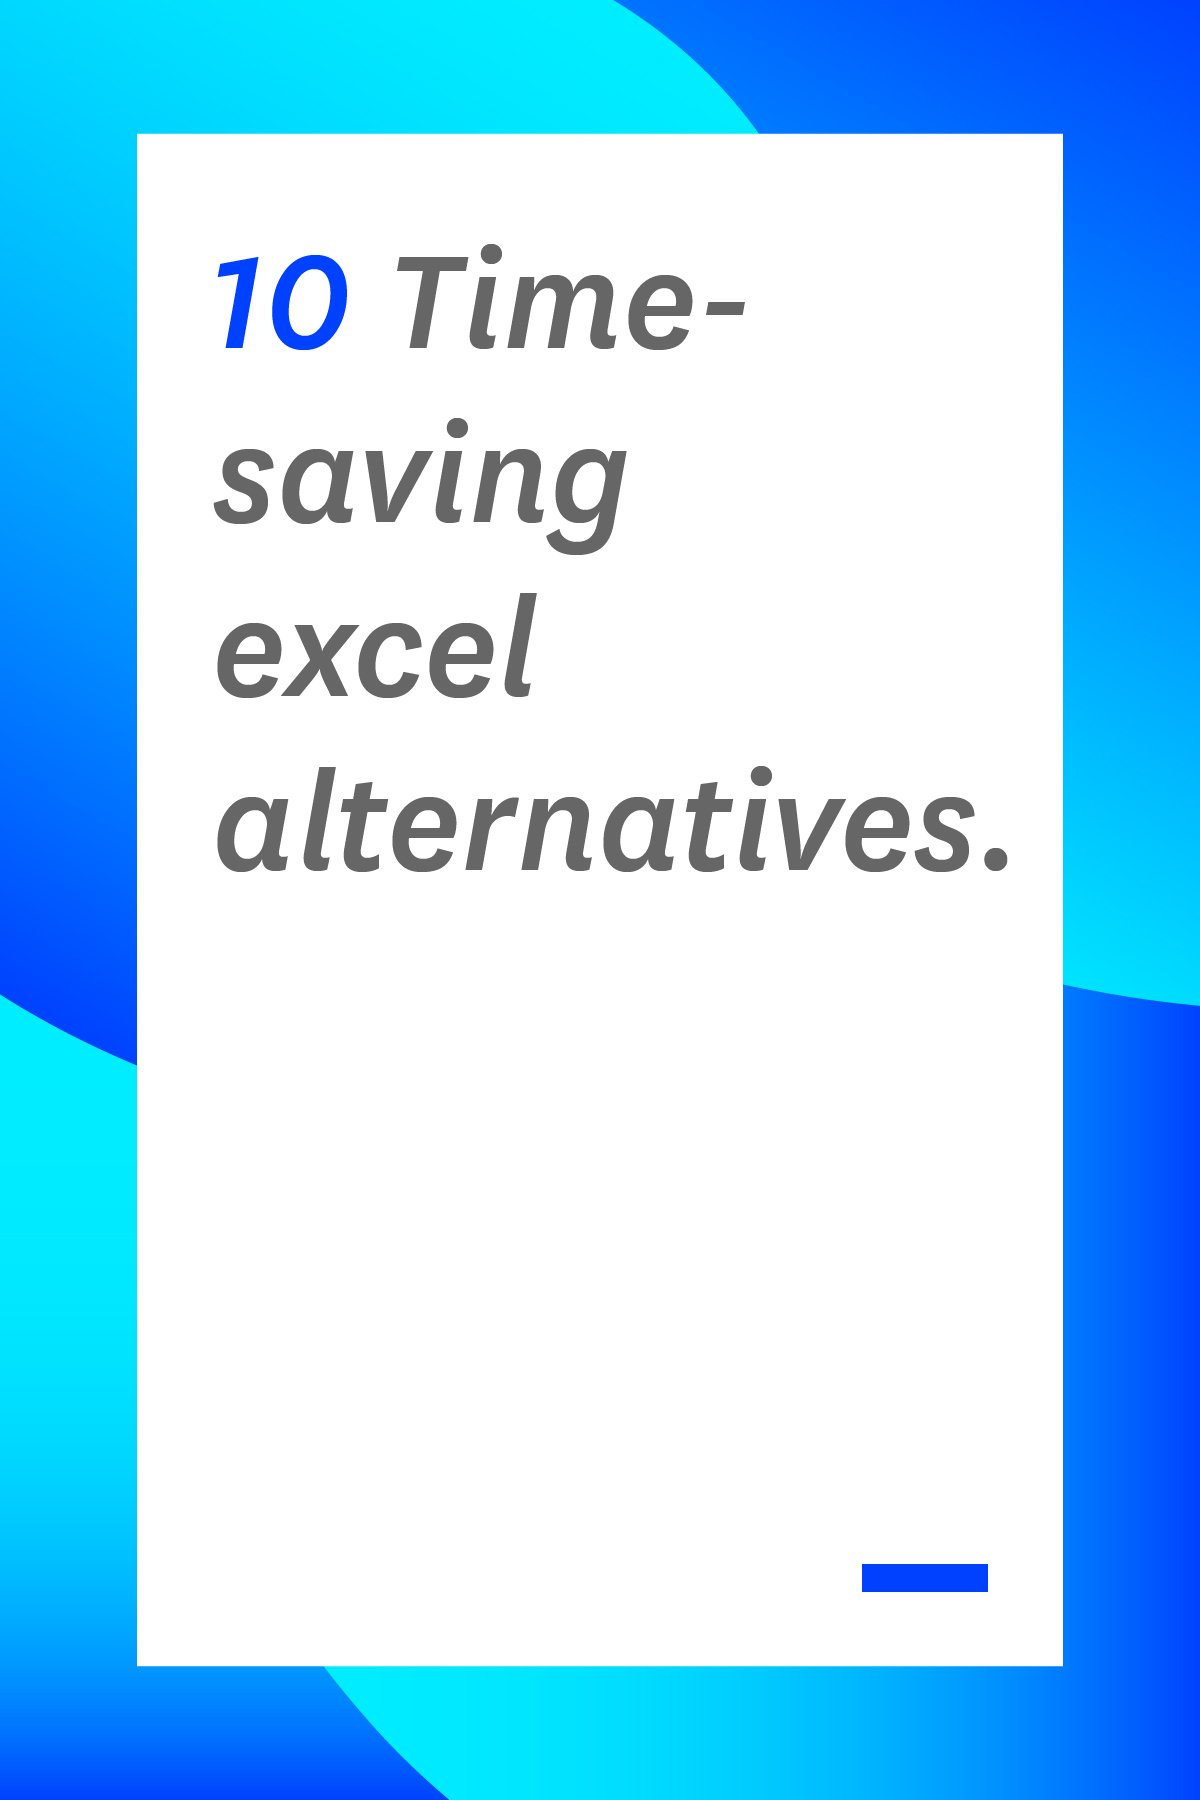 Are you still using Microsoft Excel to create spreadsheets, organize financial data, and handle basic math functions for your business? Did you know there are user-friendly alternatives out there that offer more useful operations that can make your company more efficient? To set you off on the right track, we've compiled this list of ten time-saving Excel alternatives that will provide more collaboration features and easier functionality.